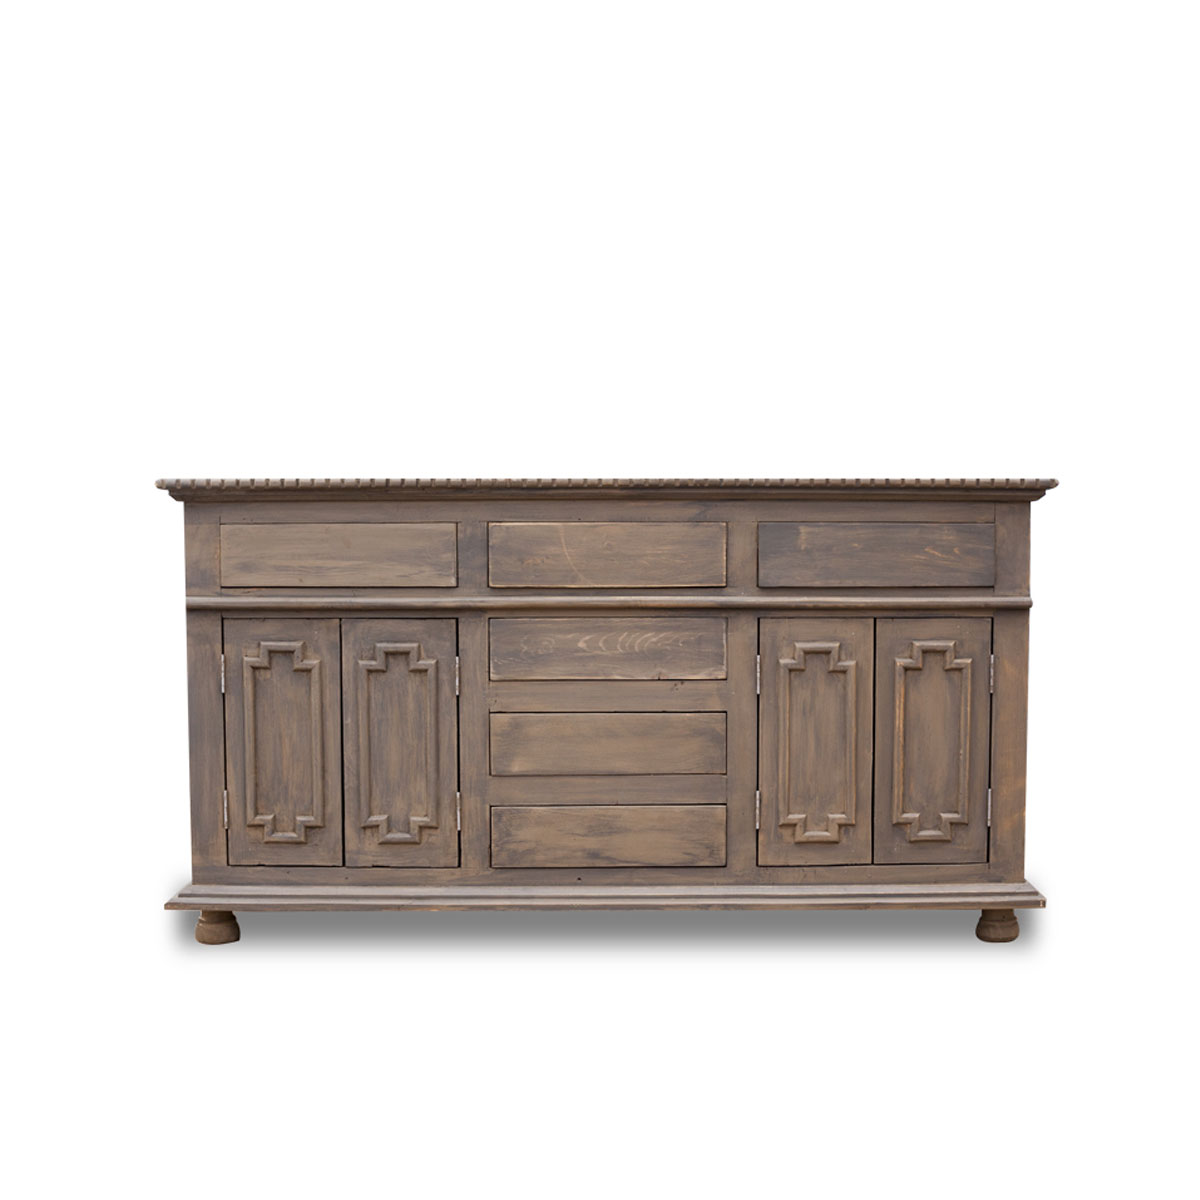 Buy Rustic Farmhouse Vanity in Grey Washed Color Online